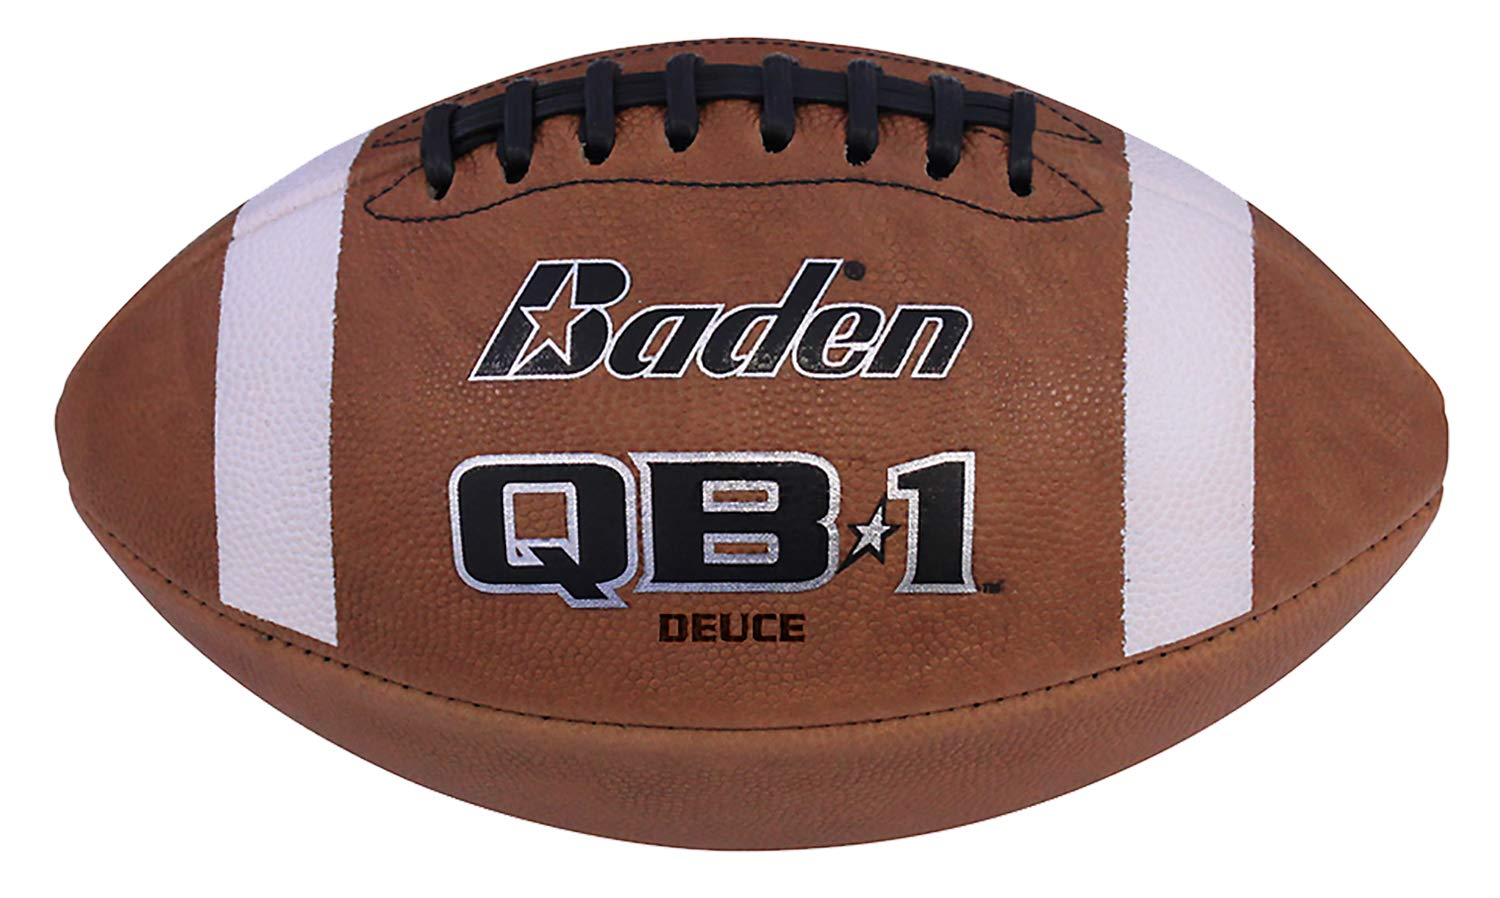 Baden Deuce Official Size 9 Full-Grain Leather Game Football B002OM8X74